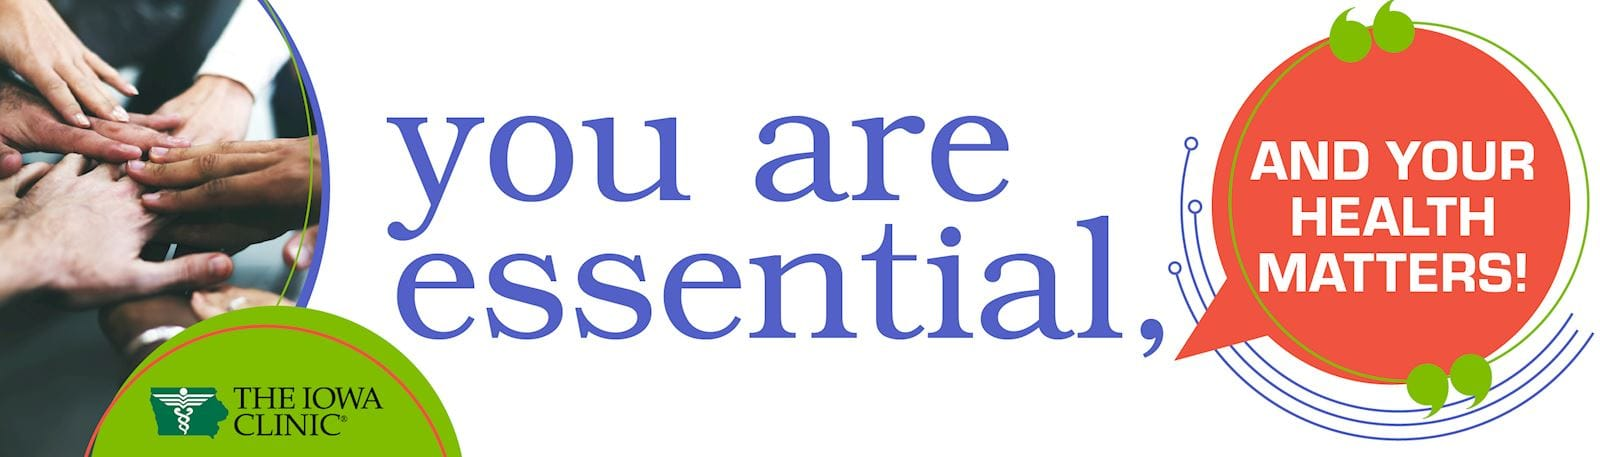 You are essential, and your health matters